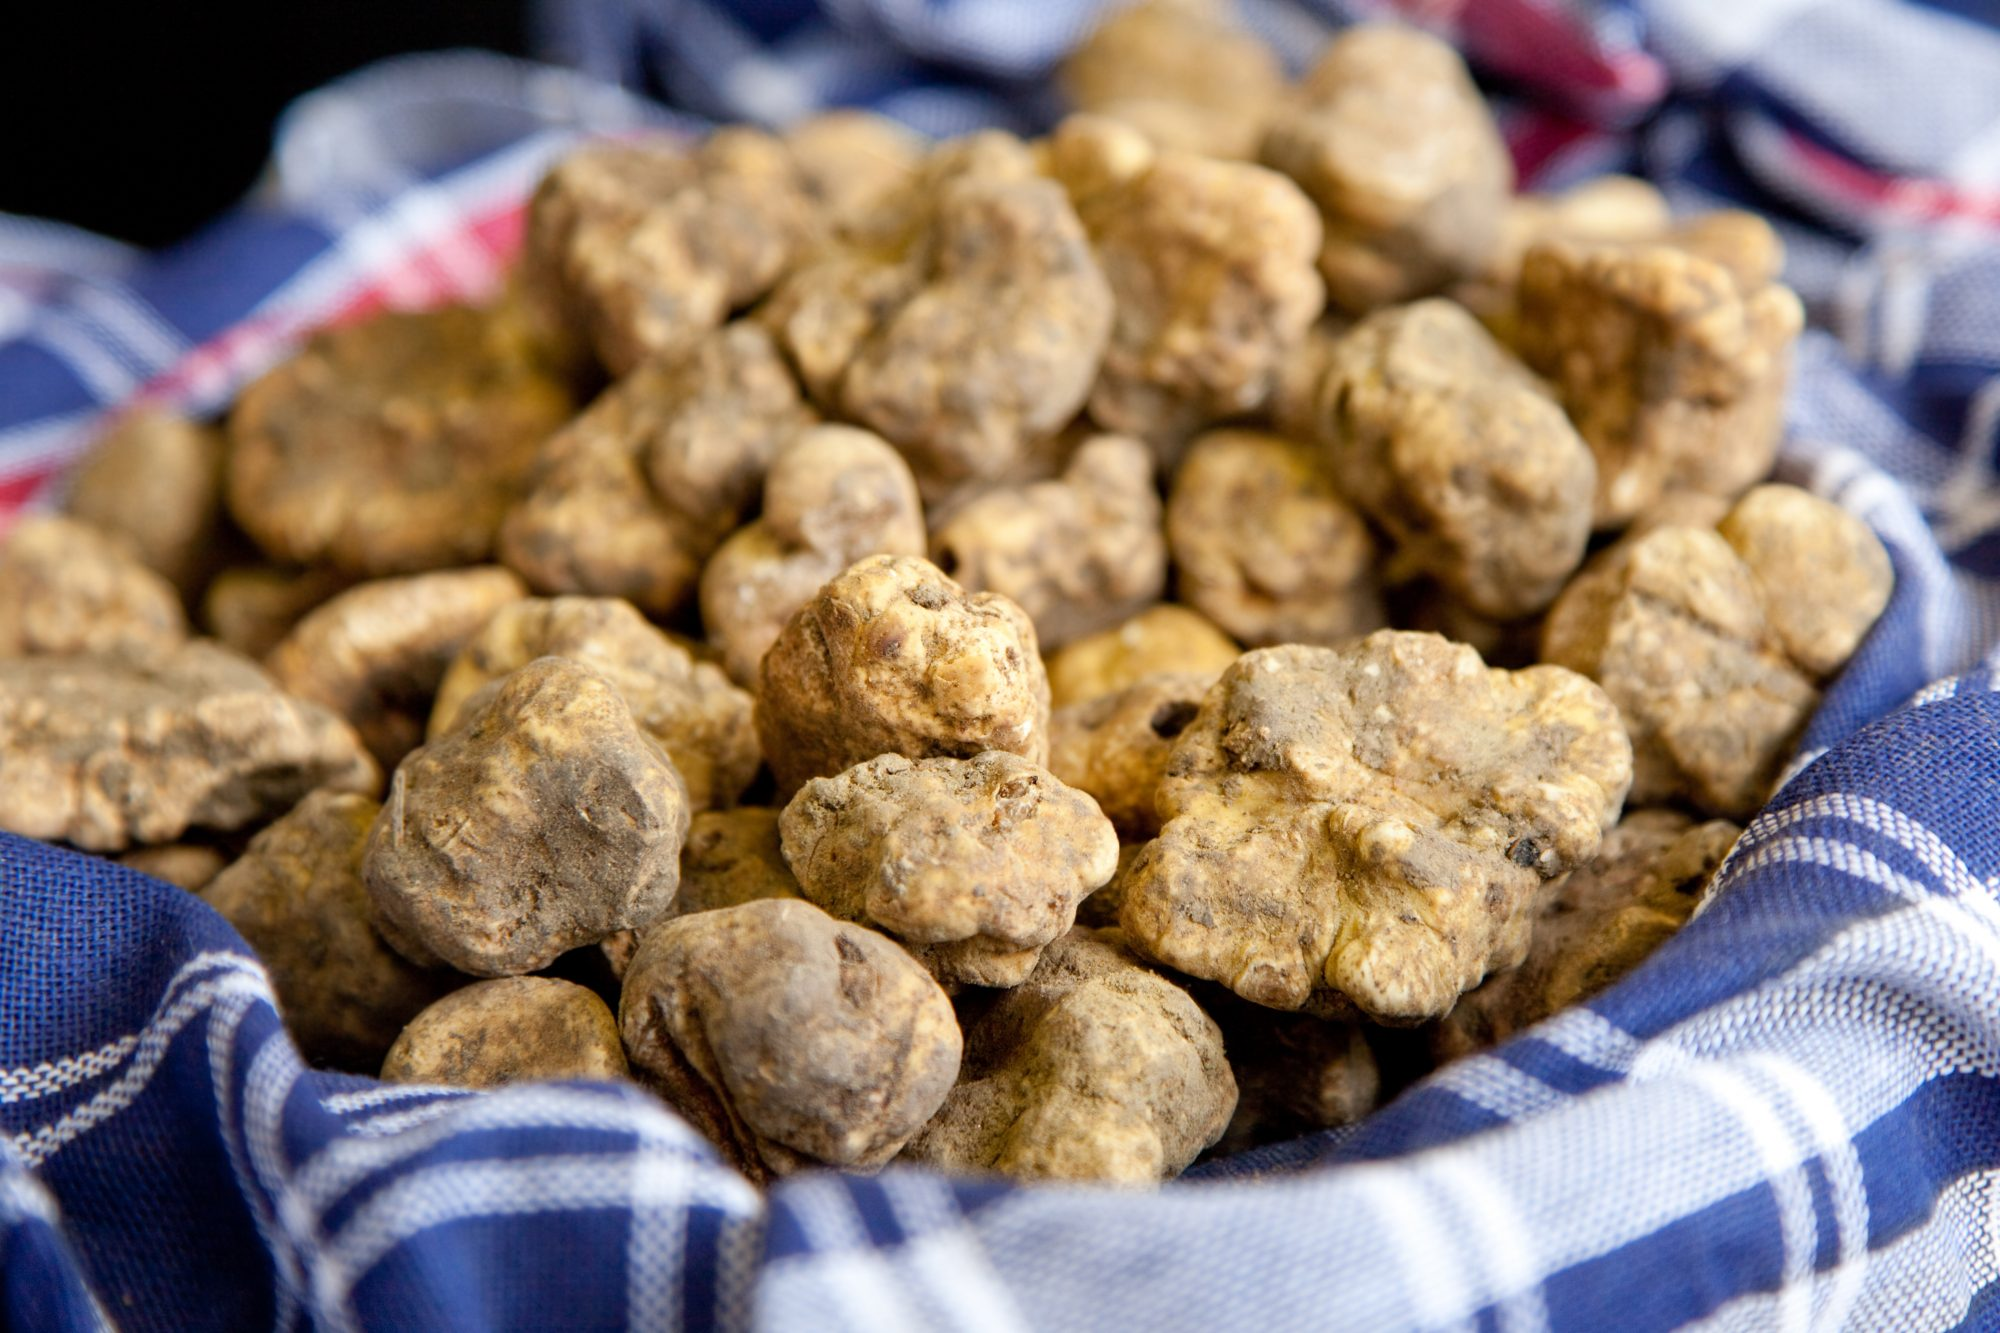 White truffles in a blue checked cloth